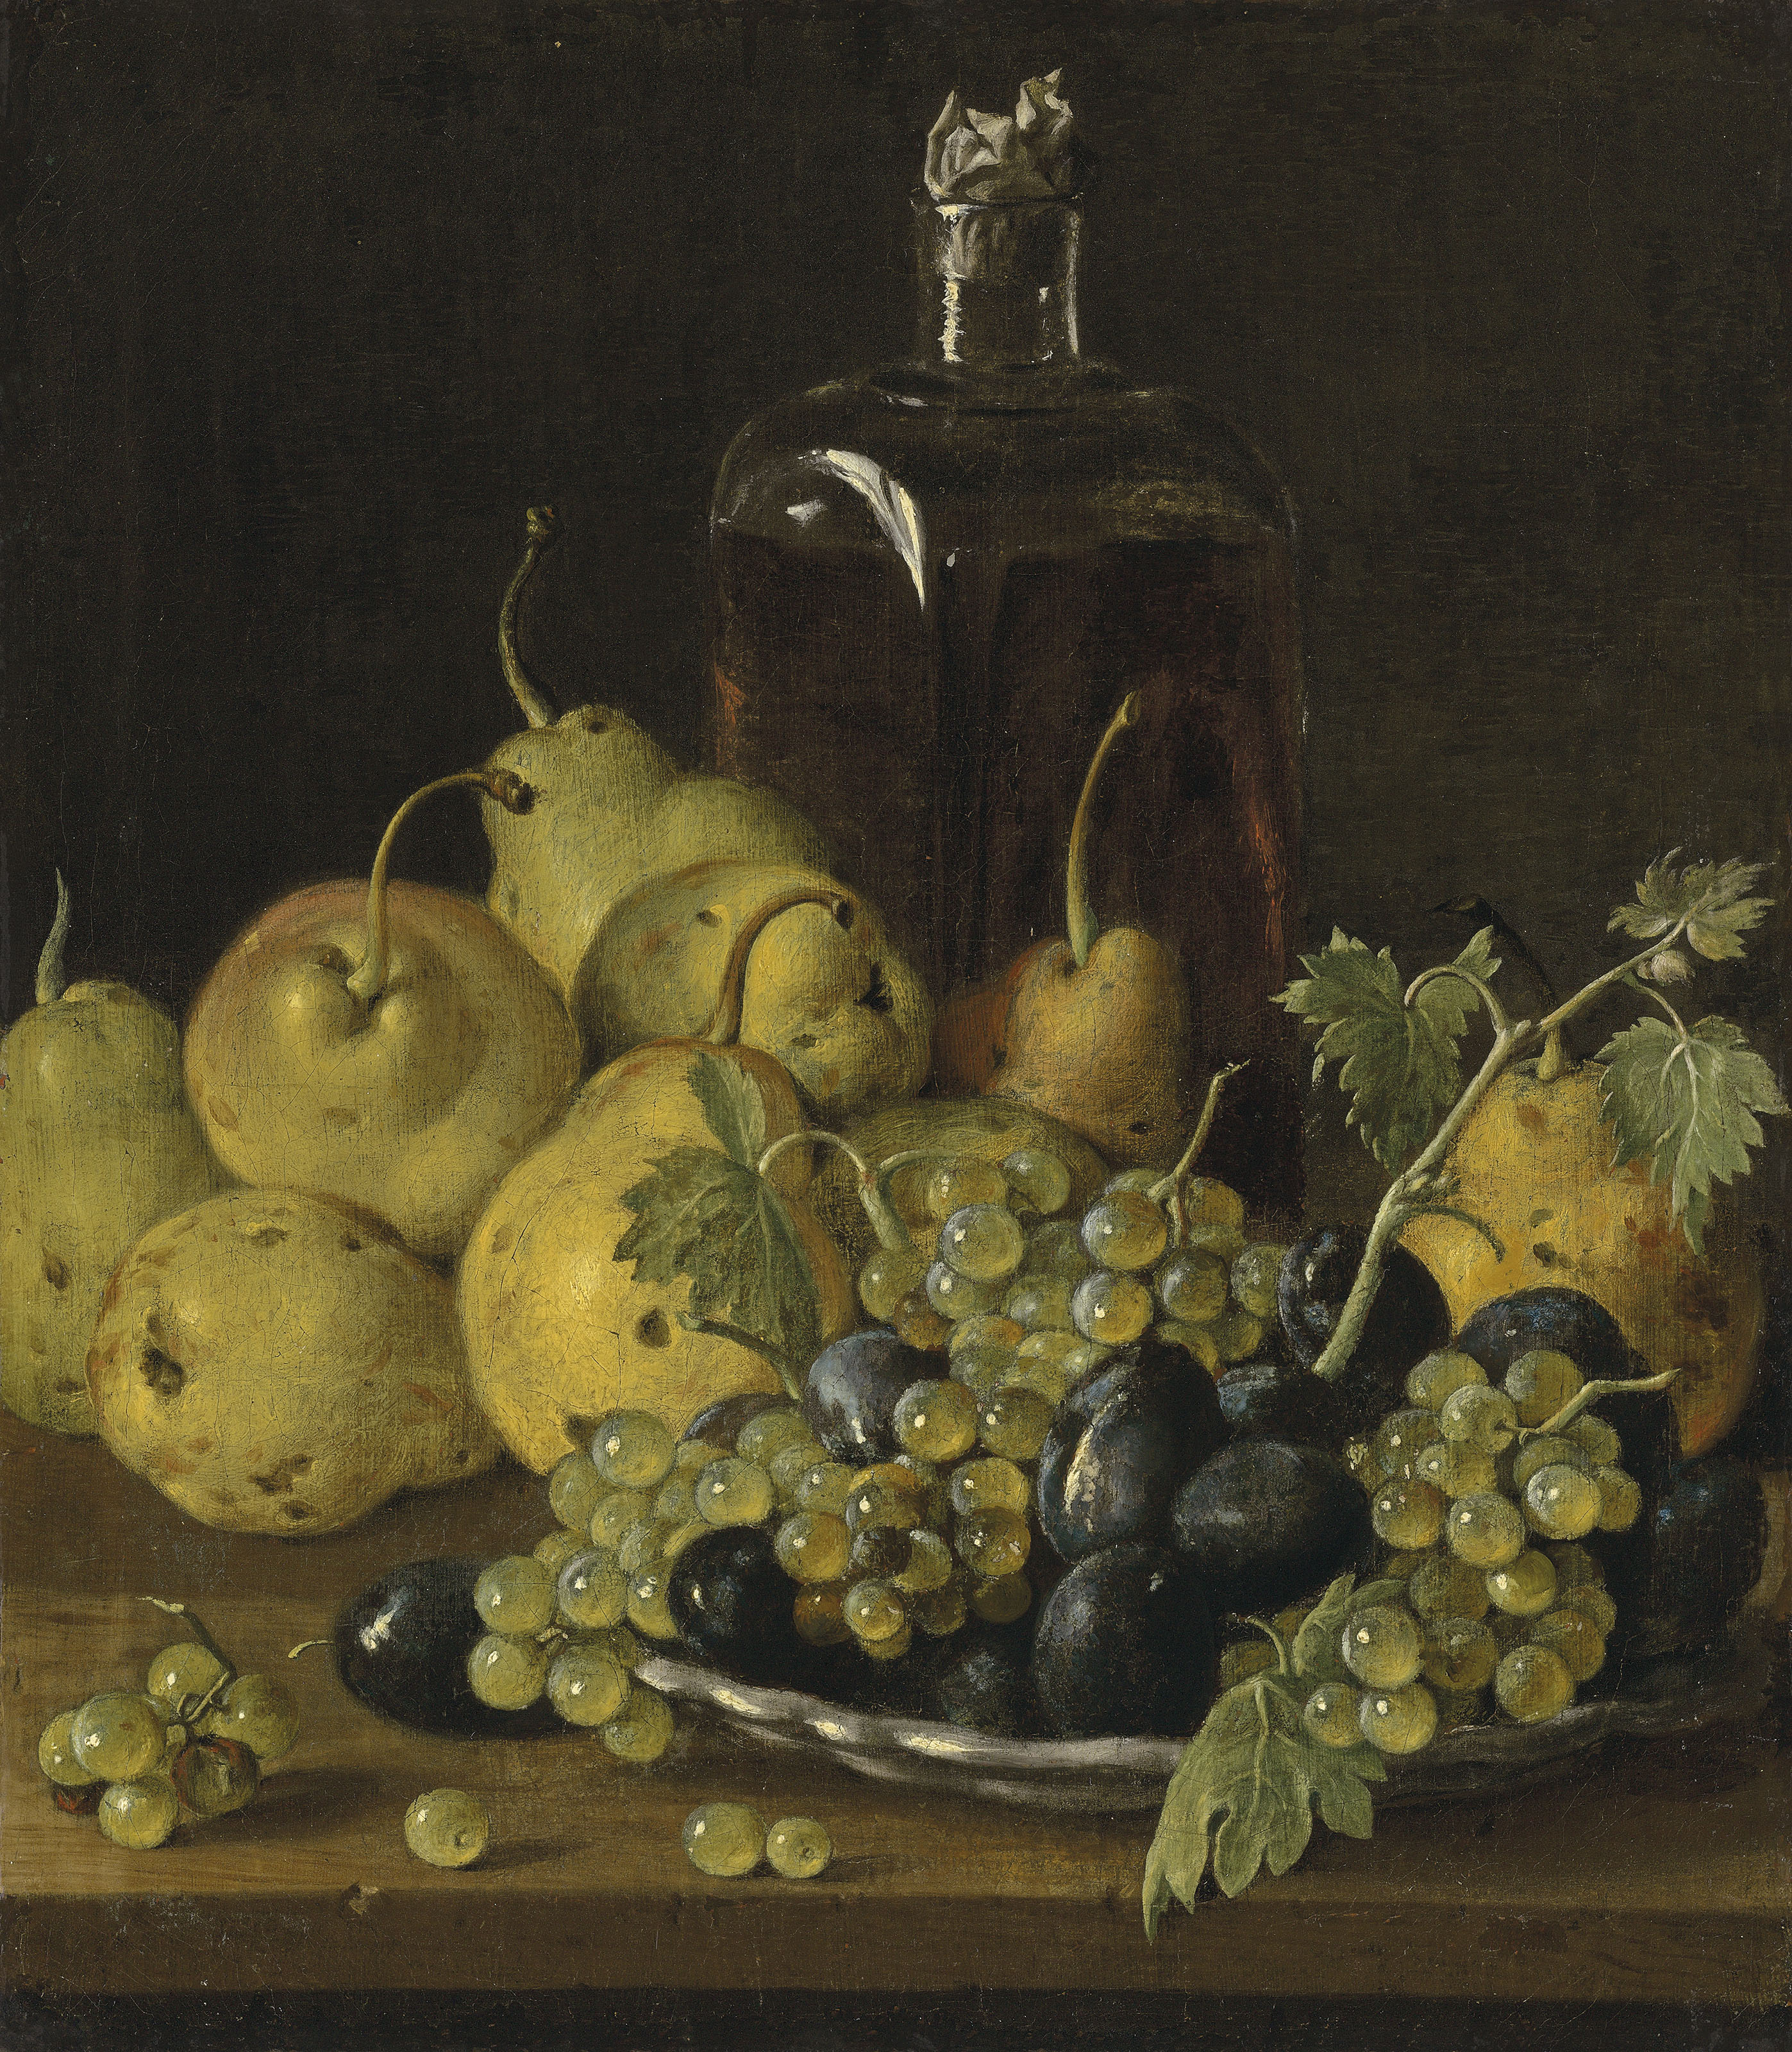 Grapes and plums on a plate, with pears and a glass bottle on a wooden ledge